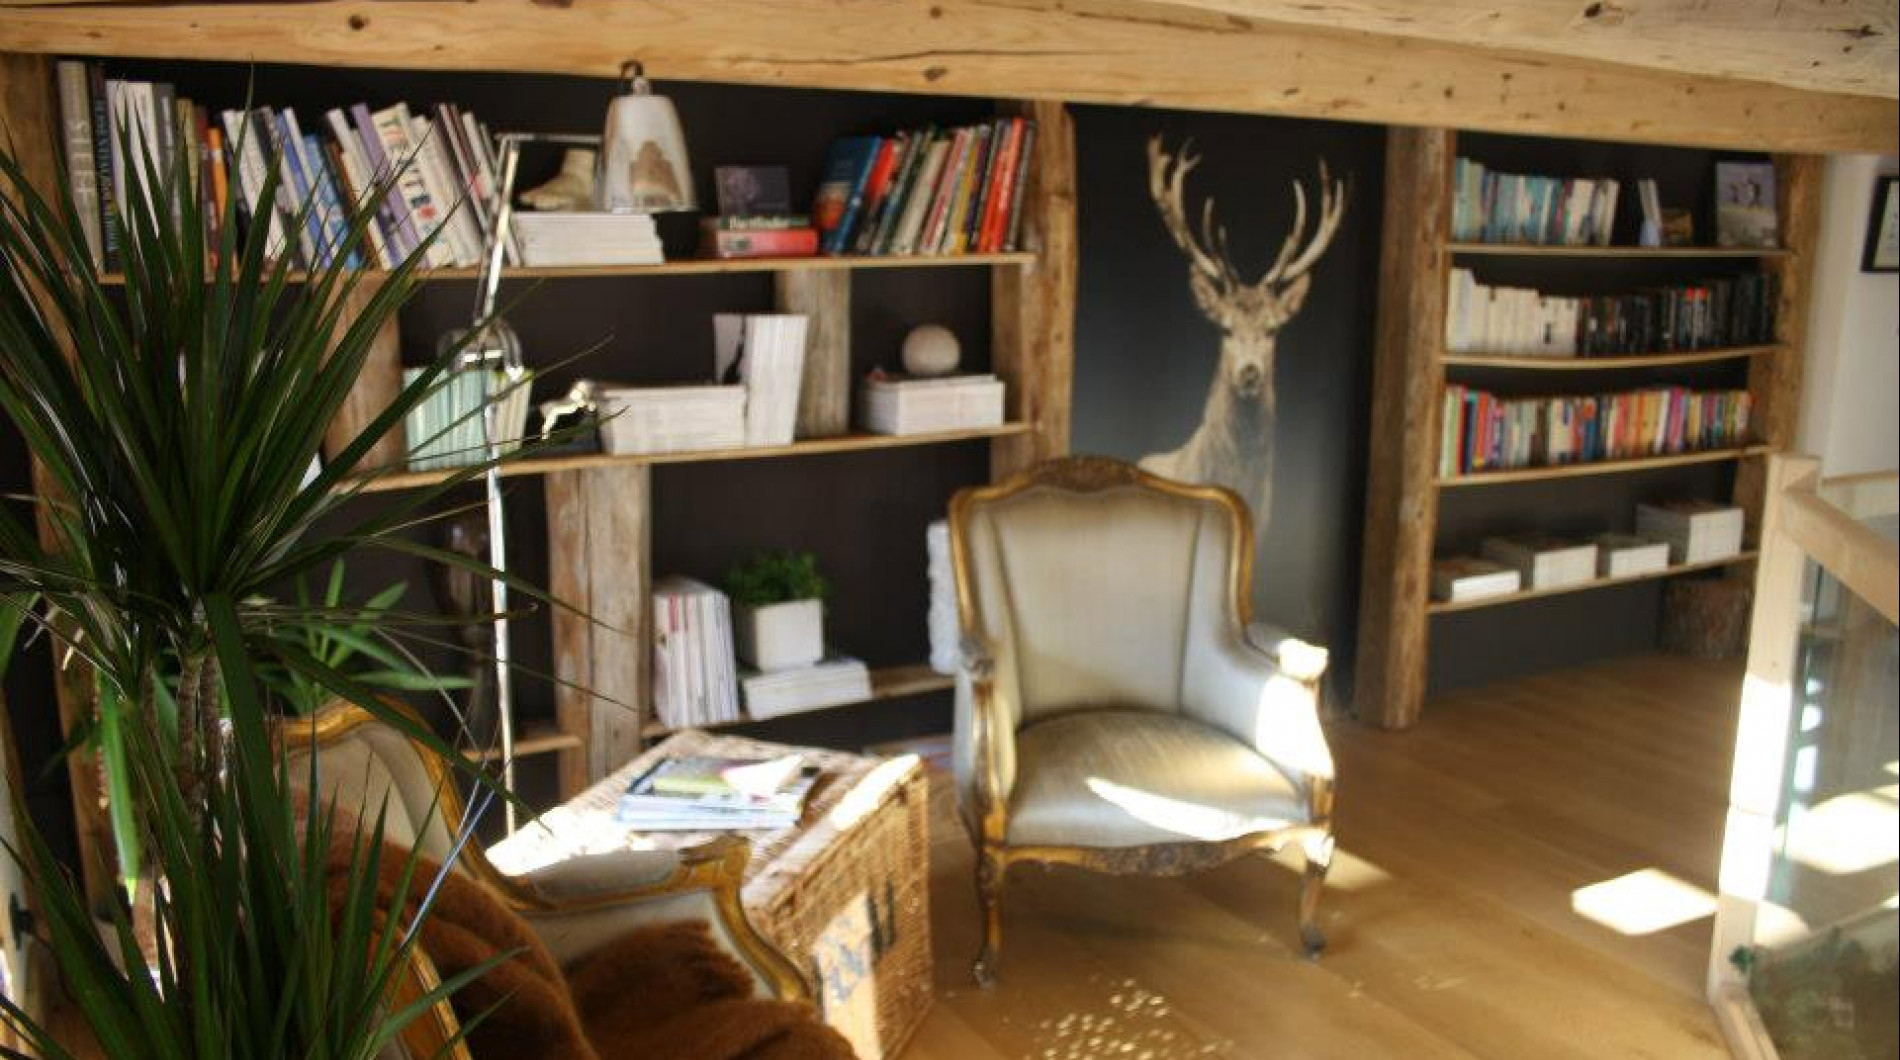 Our relaxing library area